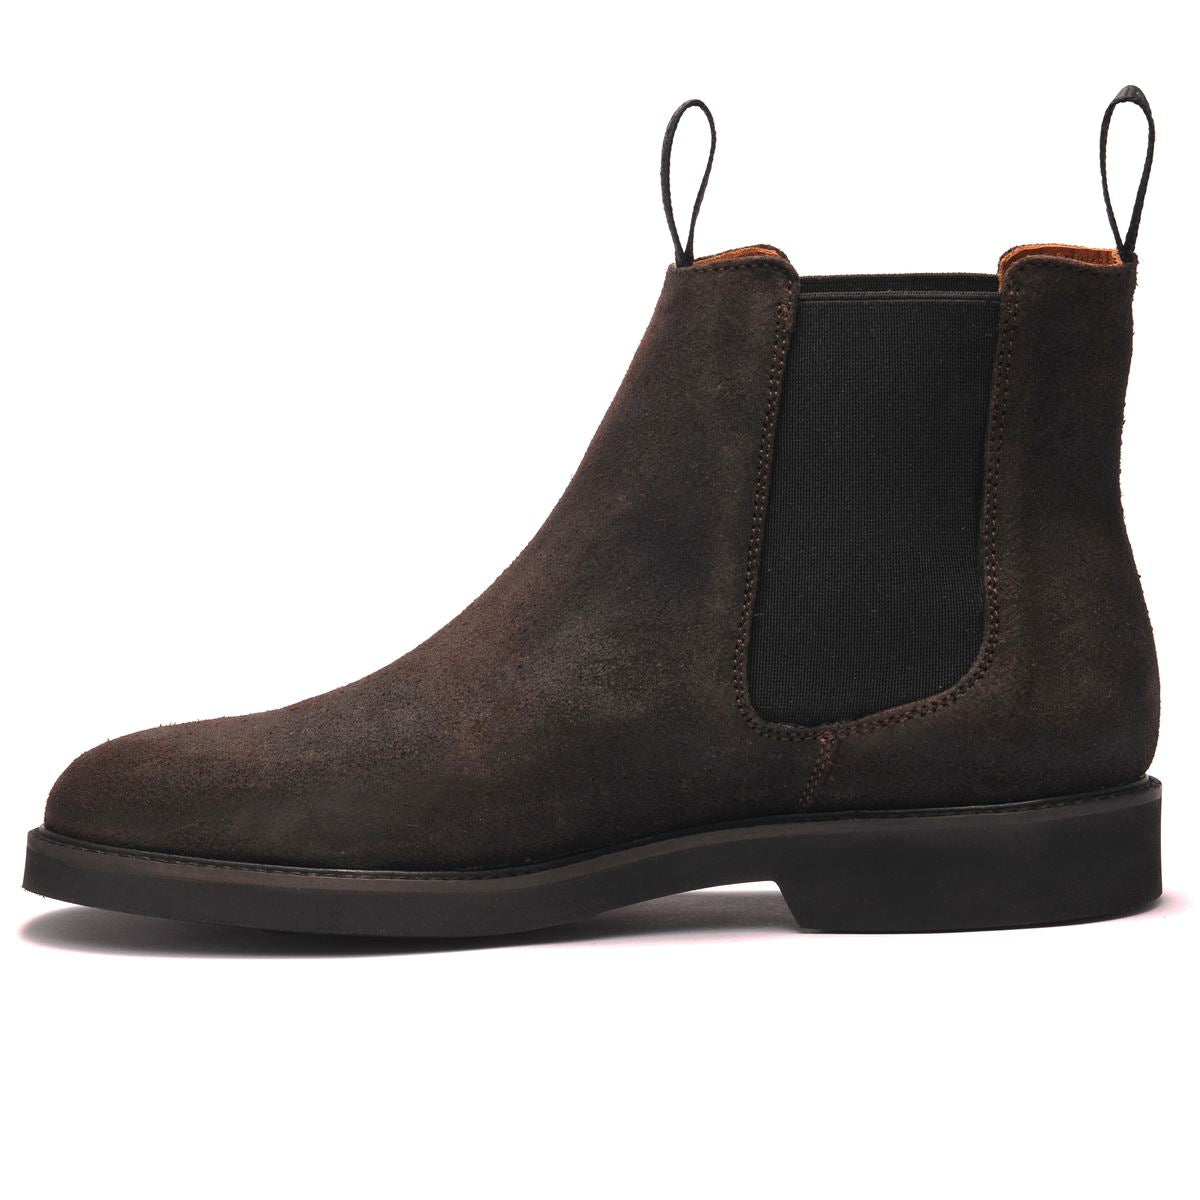 CHELSEA SUEDE POLARIS - DARK BROWN